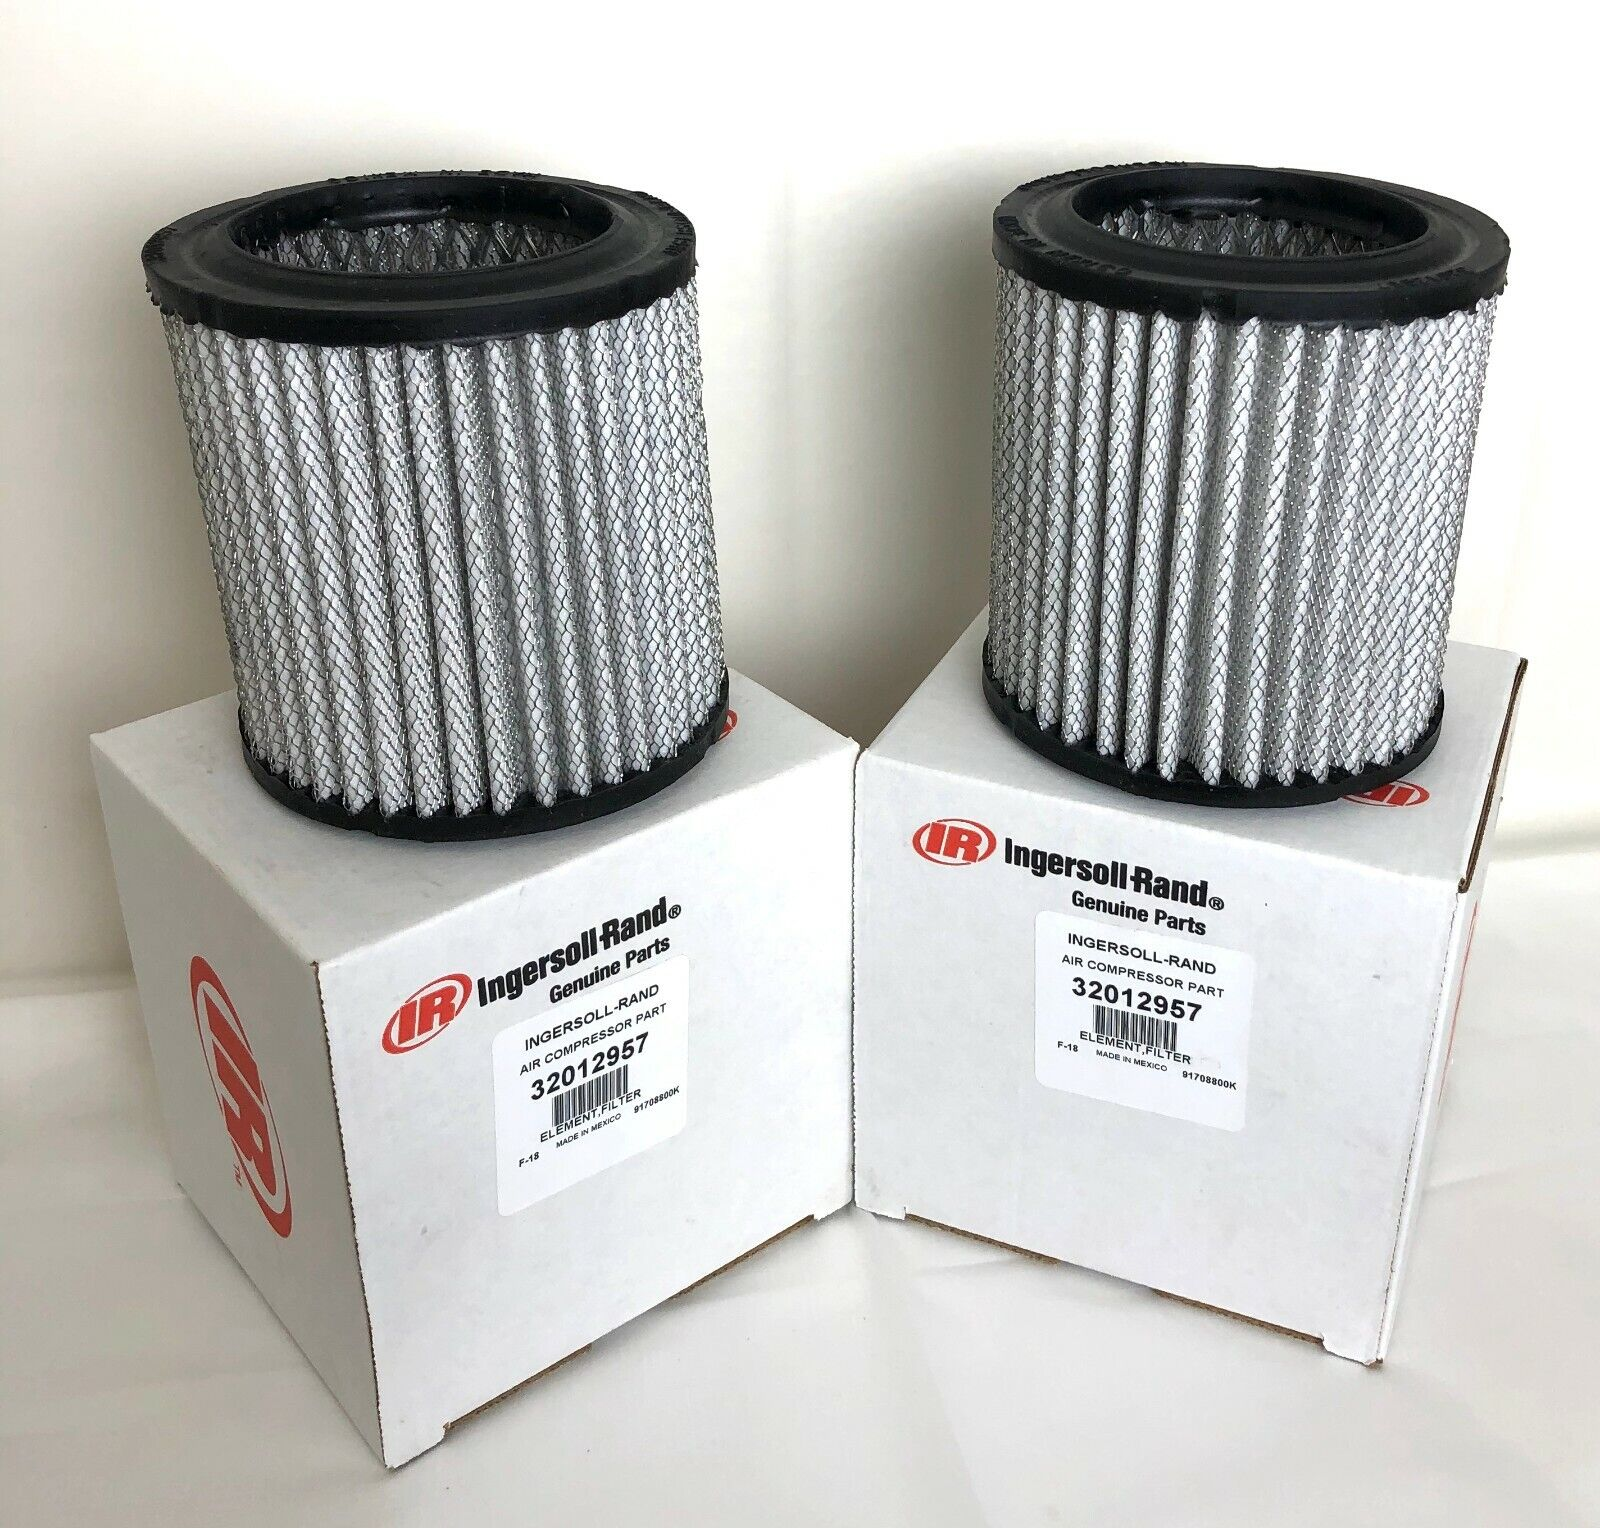 35393685 Air Filter Element Designed for use with Ingersoll Rand Compressors